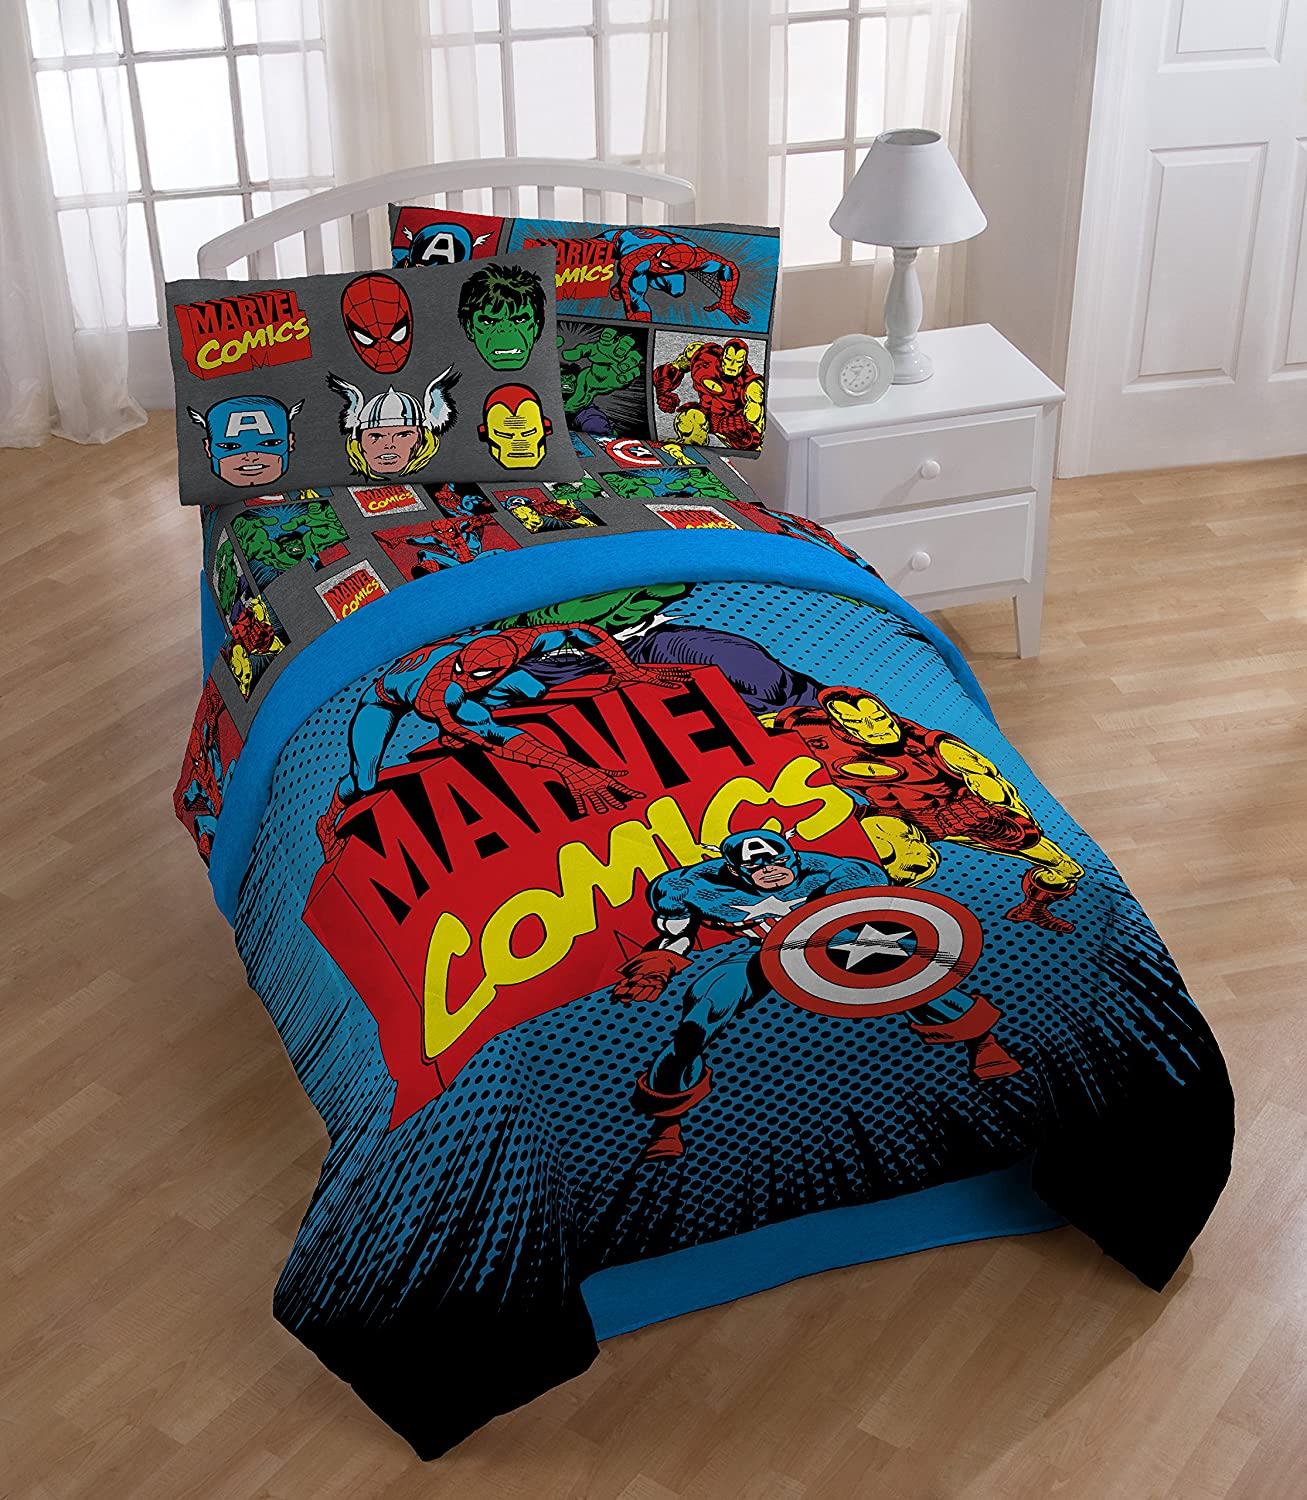 Avengers bedding set twin - Amazon Com Marvel Superheroes Microfiber 3 Piece Twin Sheet Set Home Kitchen